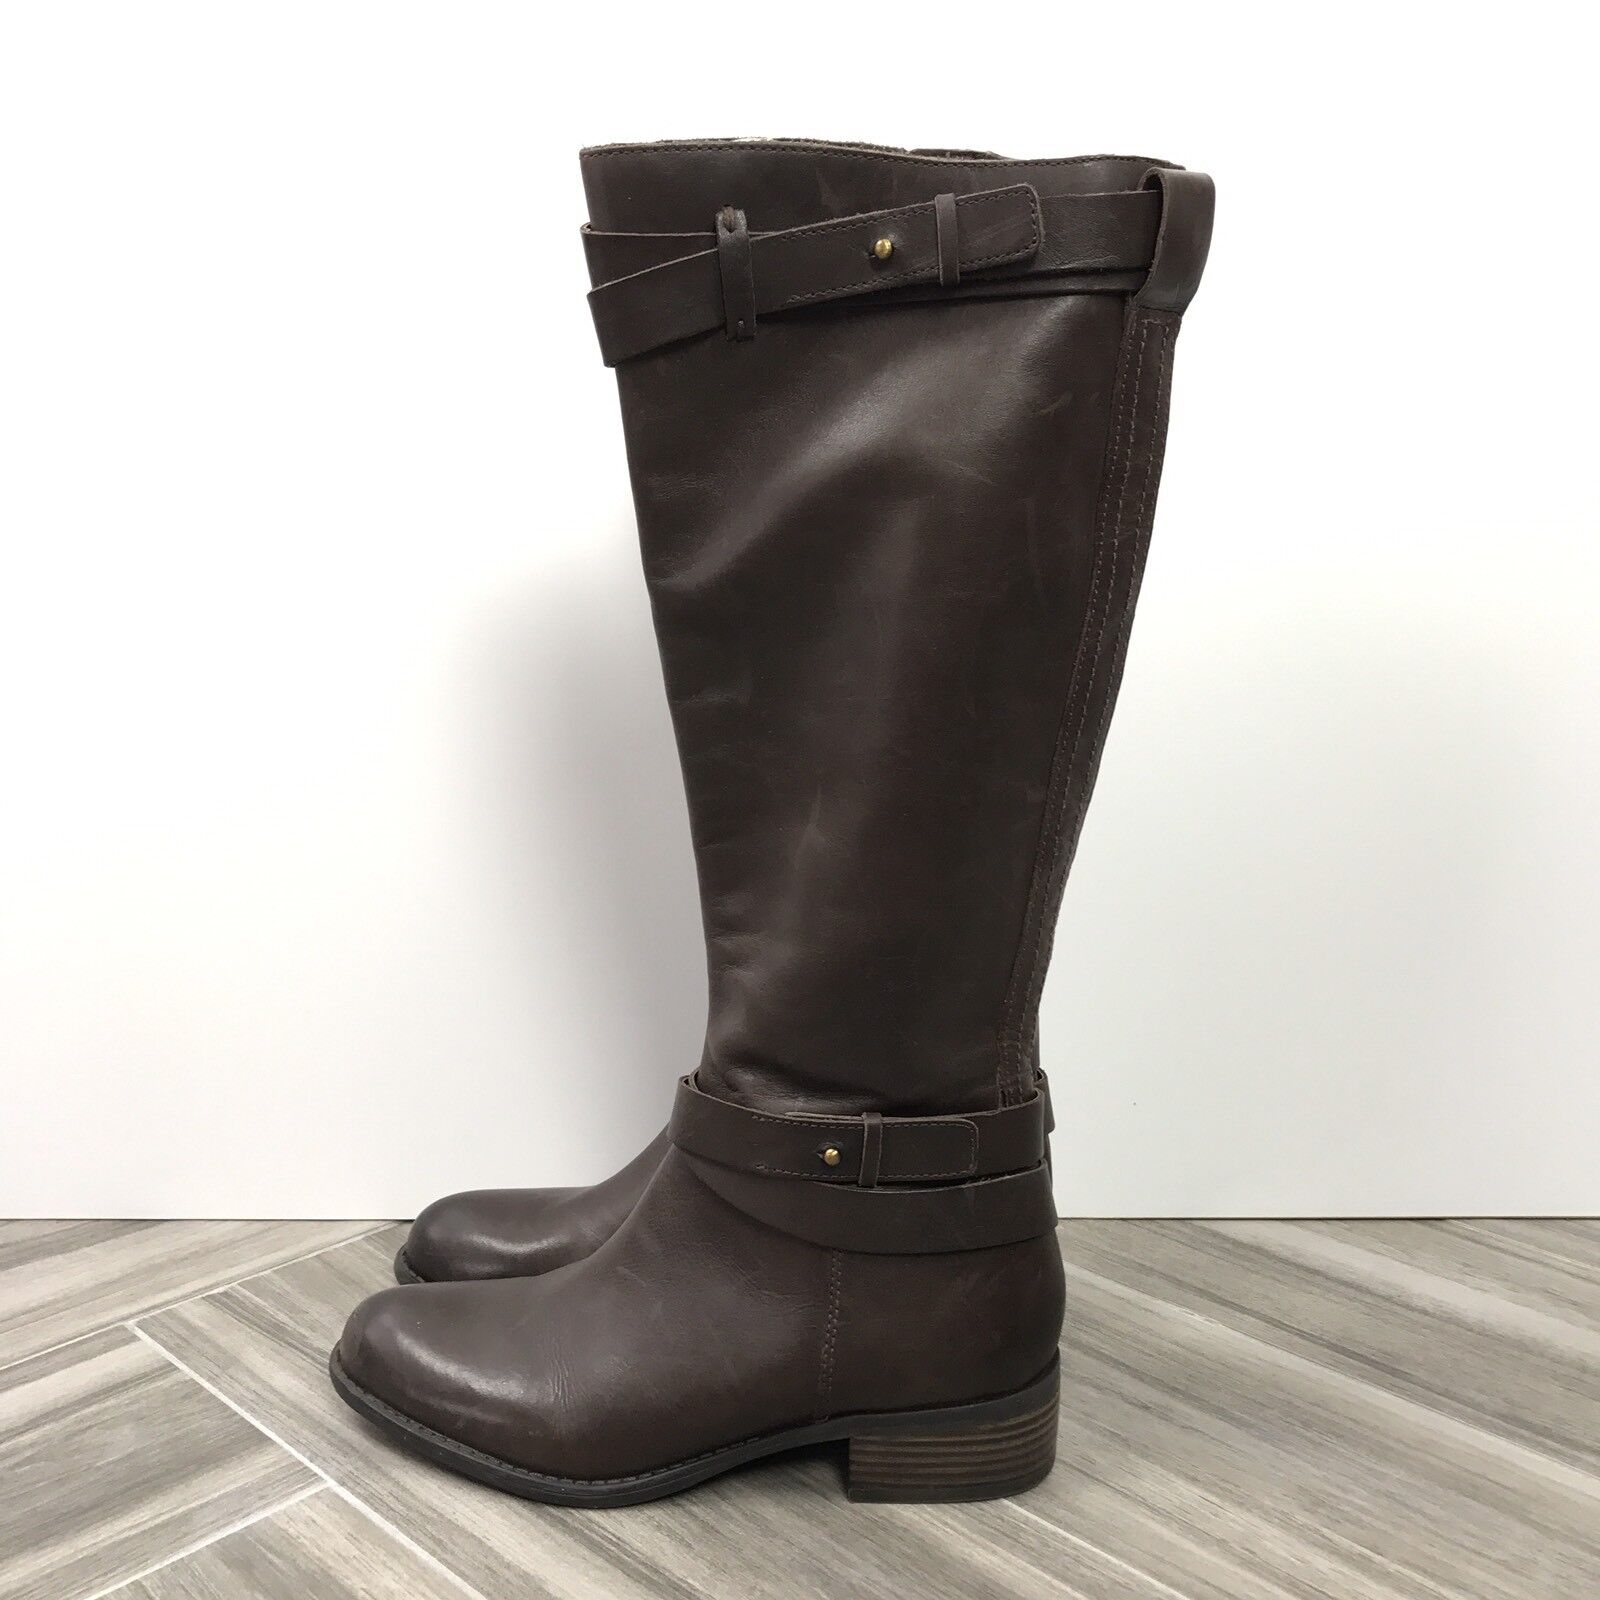 Franco Sarto L-Canary Brown Knee Hight Winter Casual Daily Leather Boots Size 7M